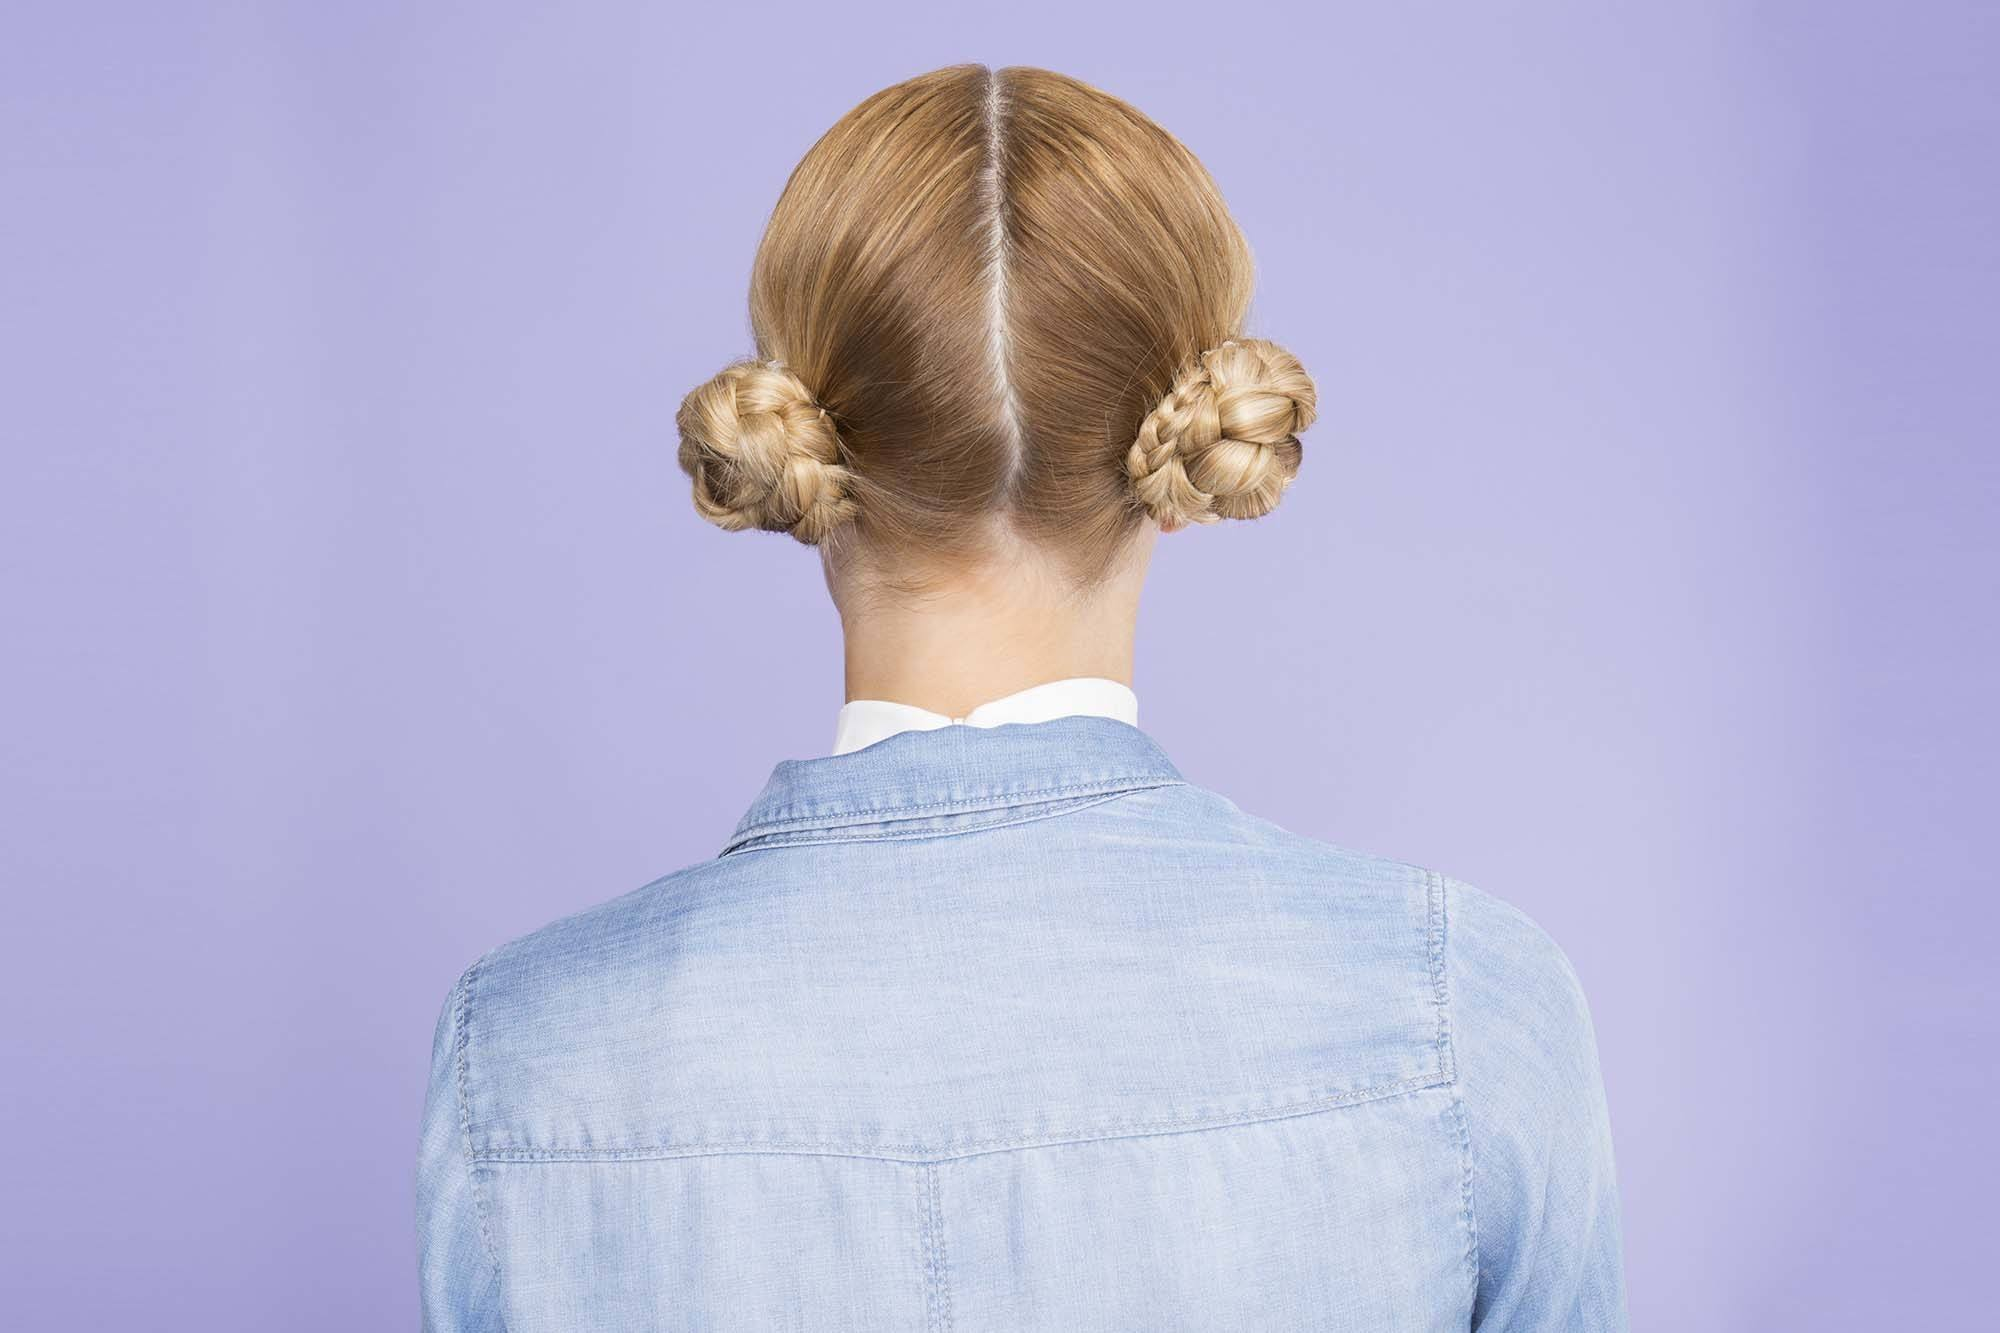 Easy updos - double braided buns on blonde model with blue backdrop